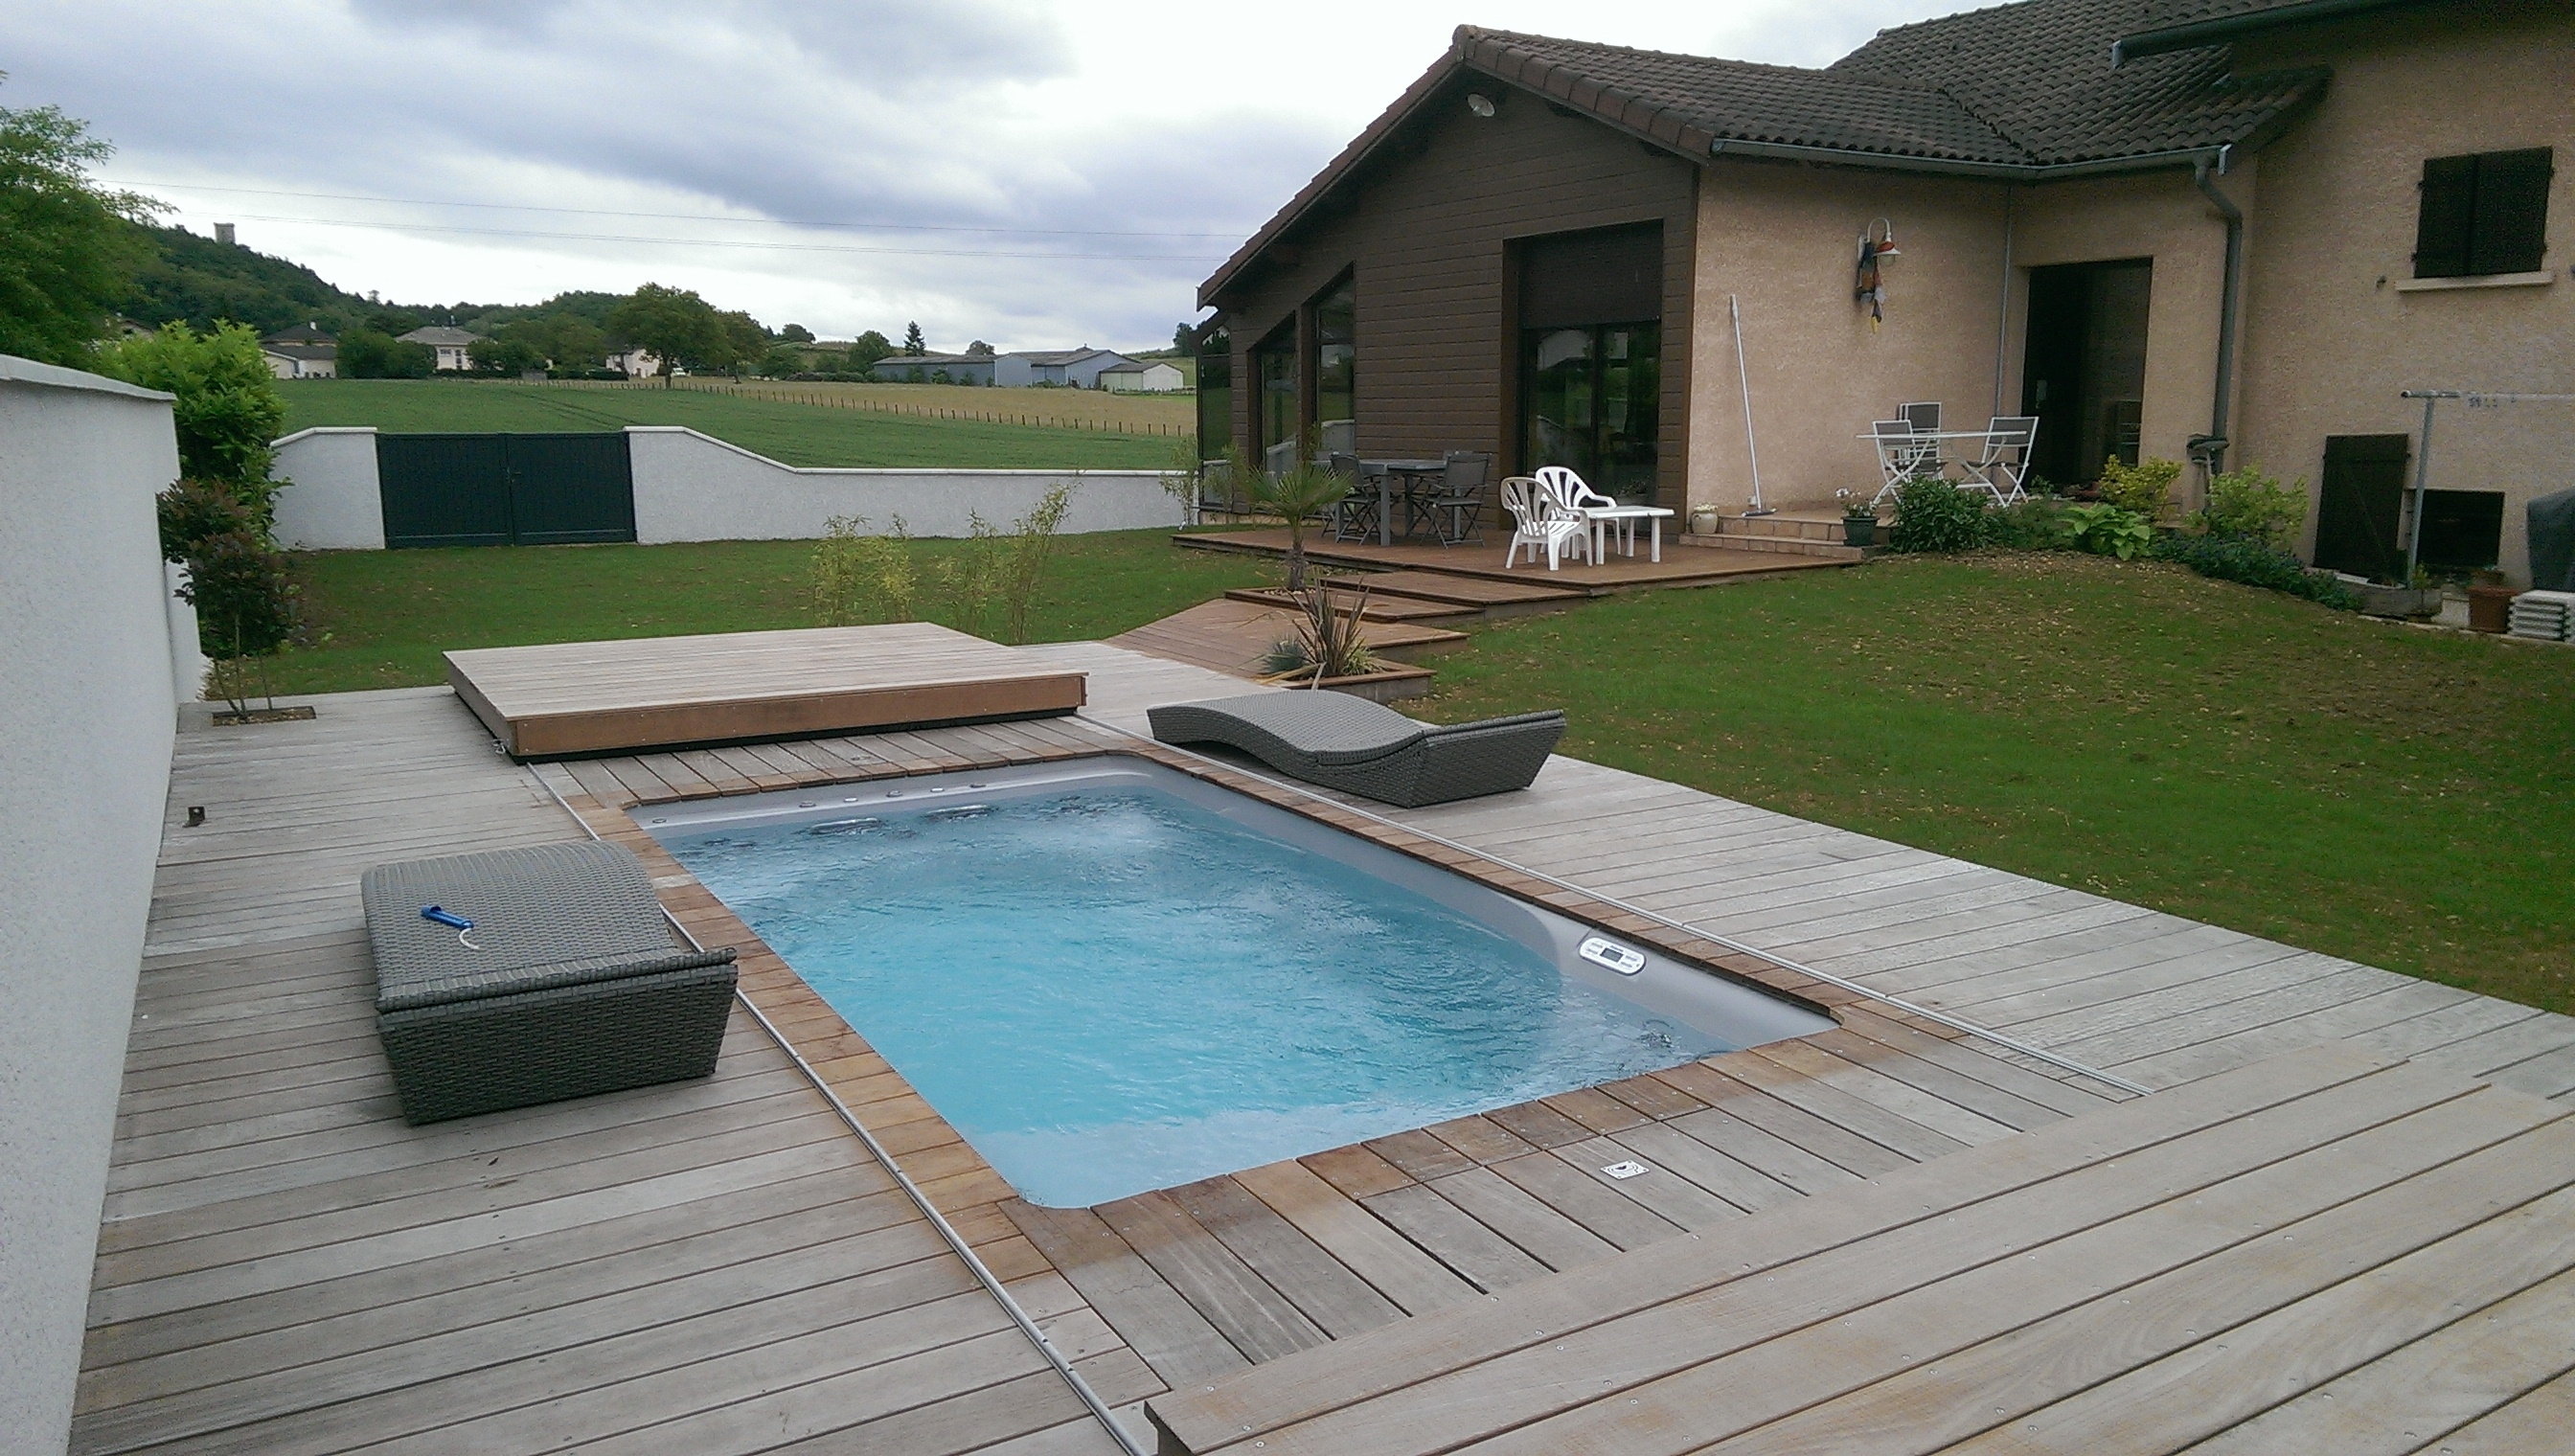 Piscine spa baln o nage contre courant pretty pool for Spa avec piscine